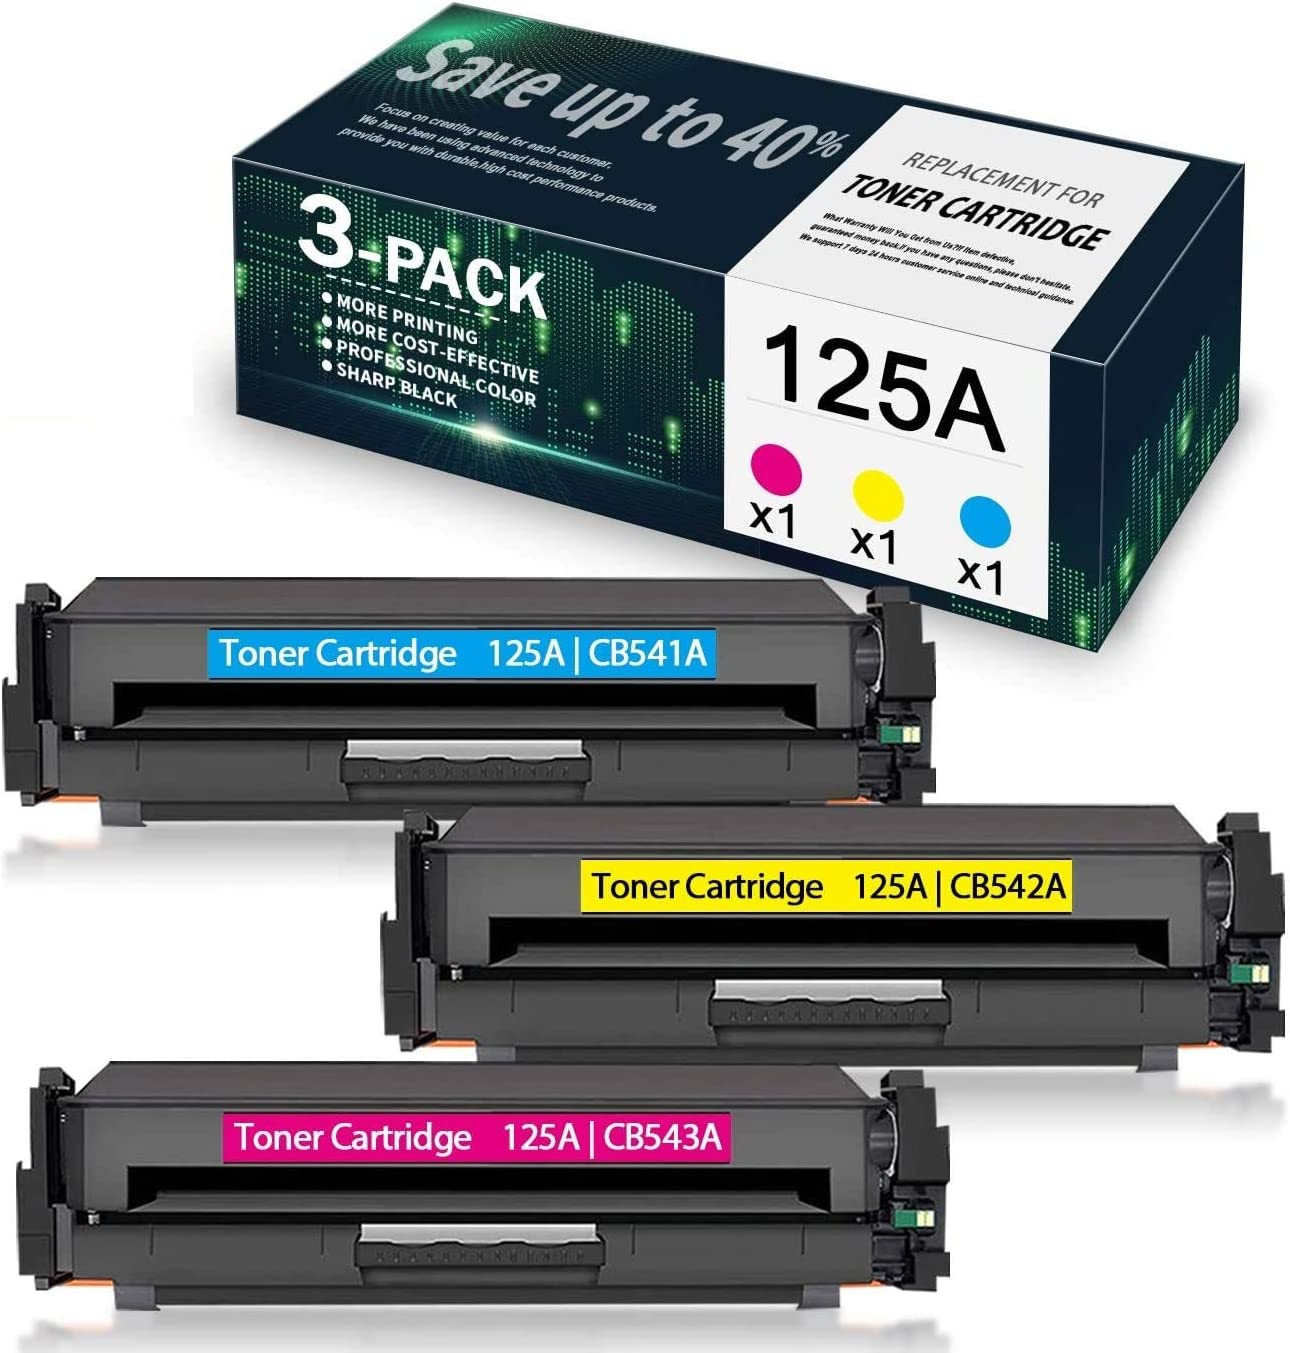 3-Pack (1C+1Y+1M) 125A | CB541A CB542A CB543A Compatible Remanufactured Toner Cartridge Replacement for HP Color Laserjet CP1215 CP1518ni CP1515n CM1312 Printer, Toner Cartridge.